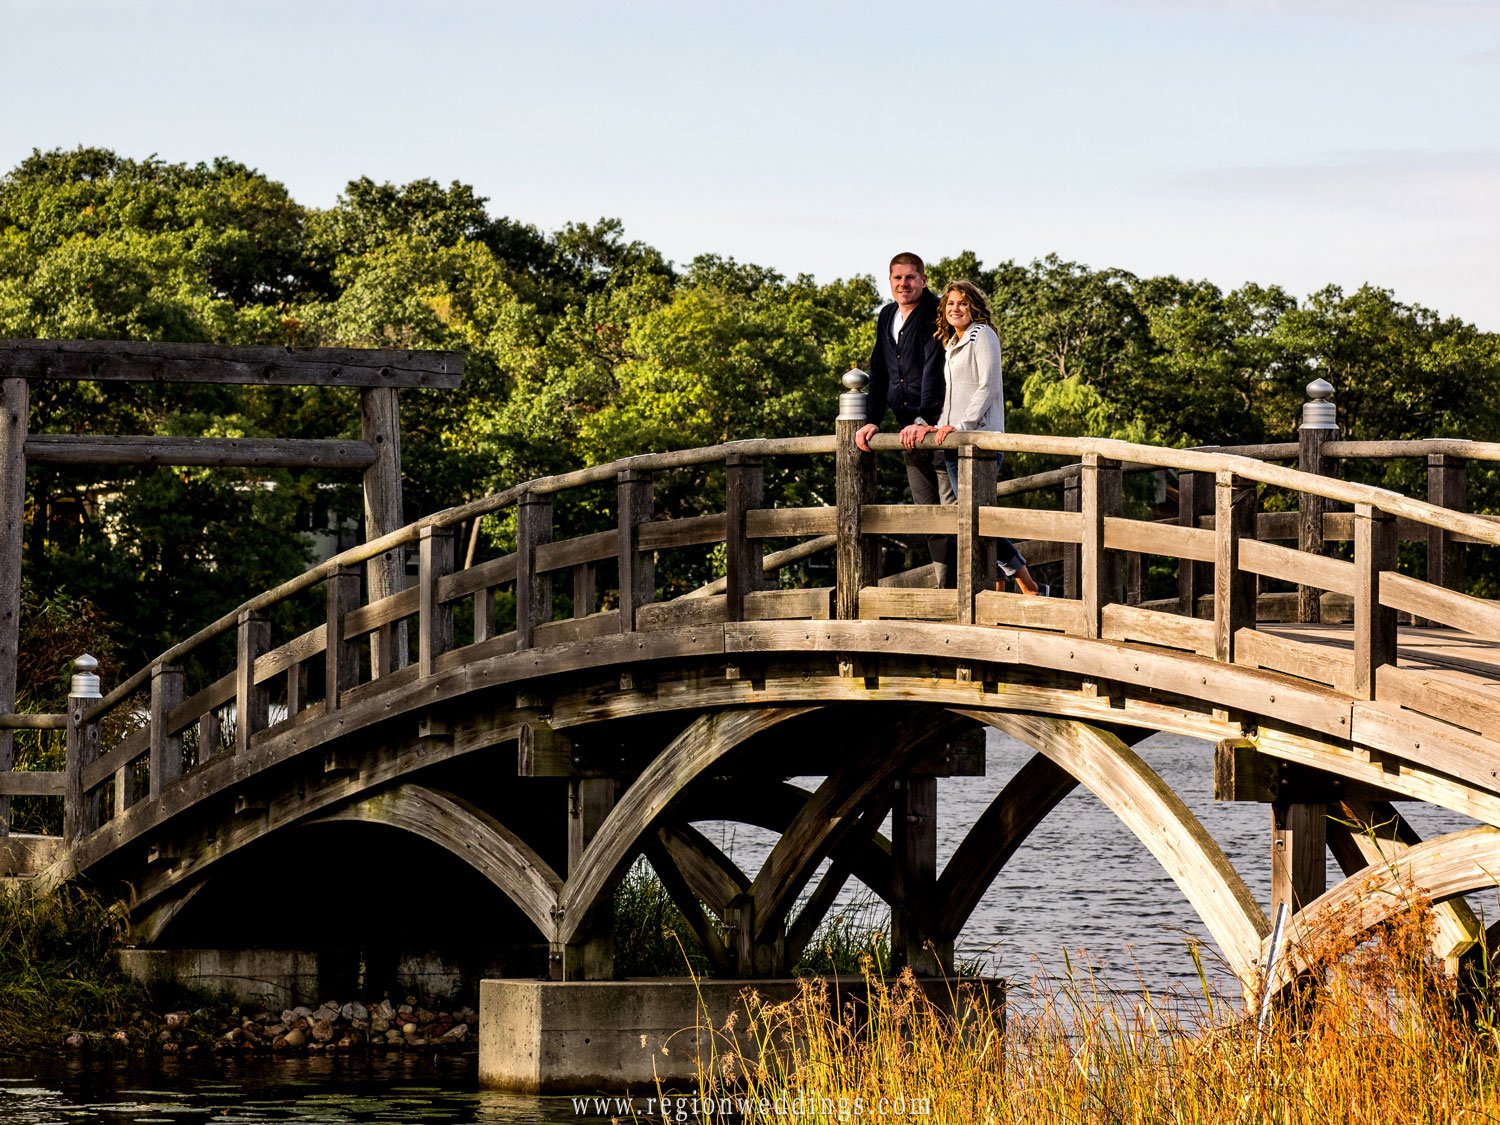 A young couple looks out over the lagoon bridge at Marquette Park.